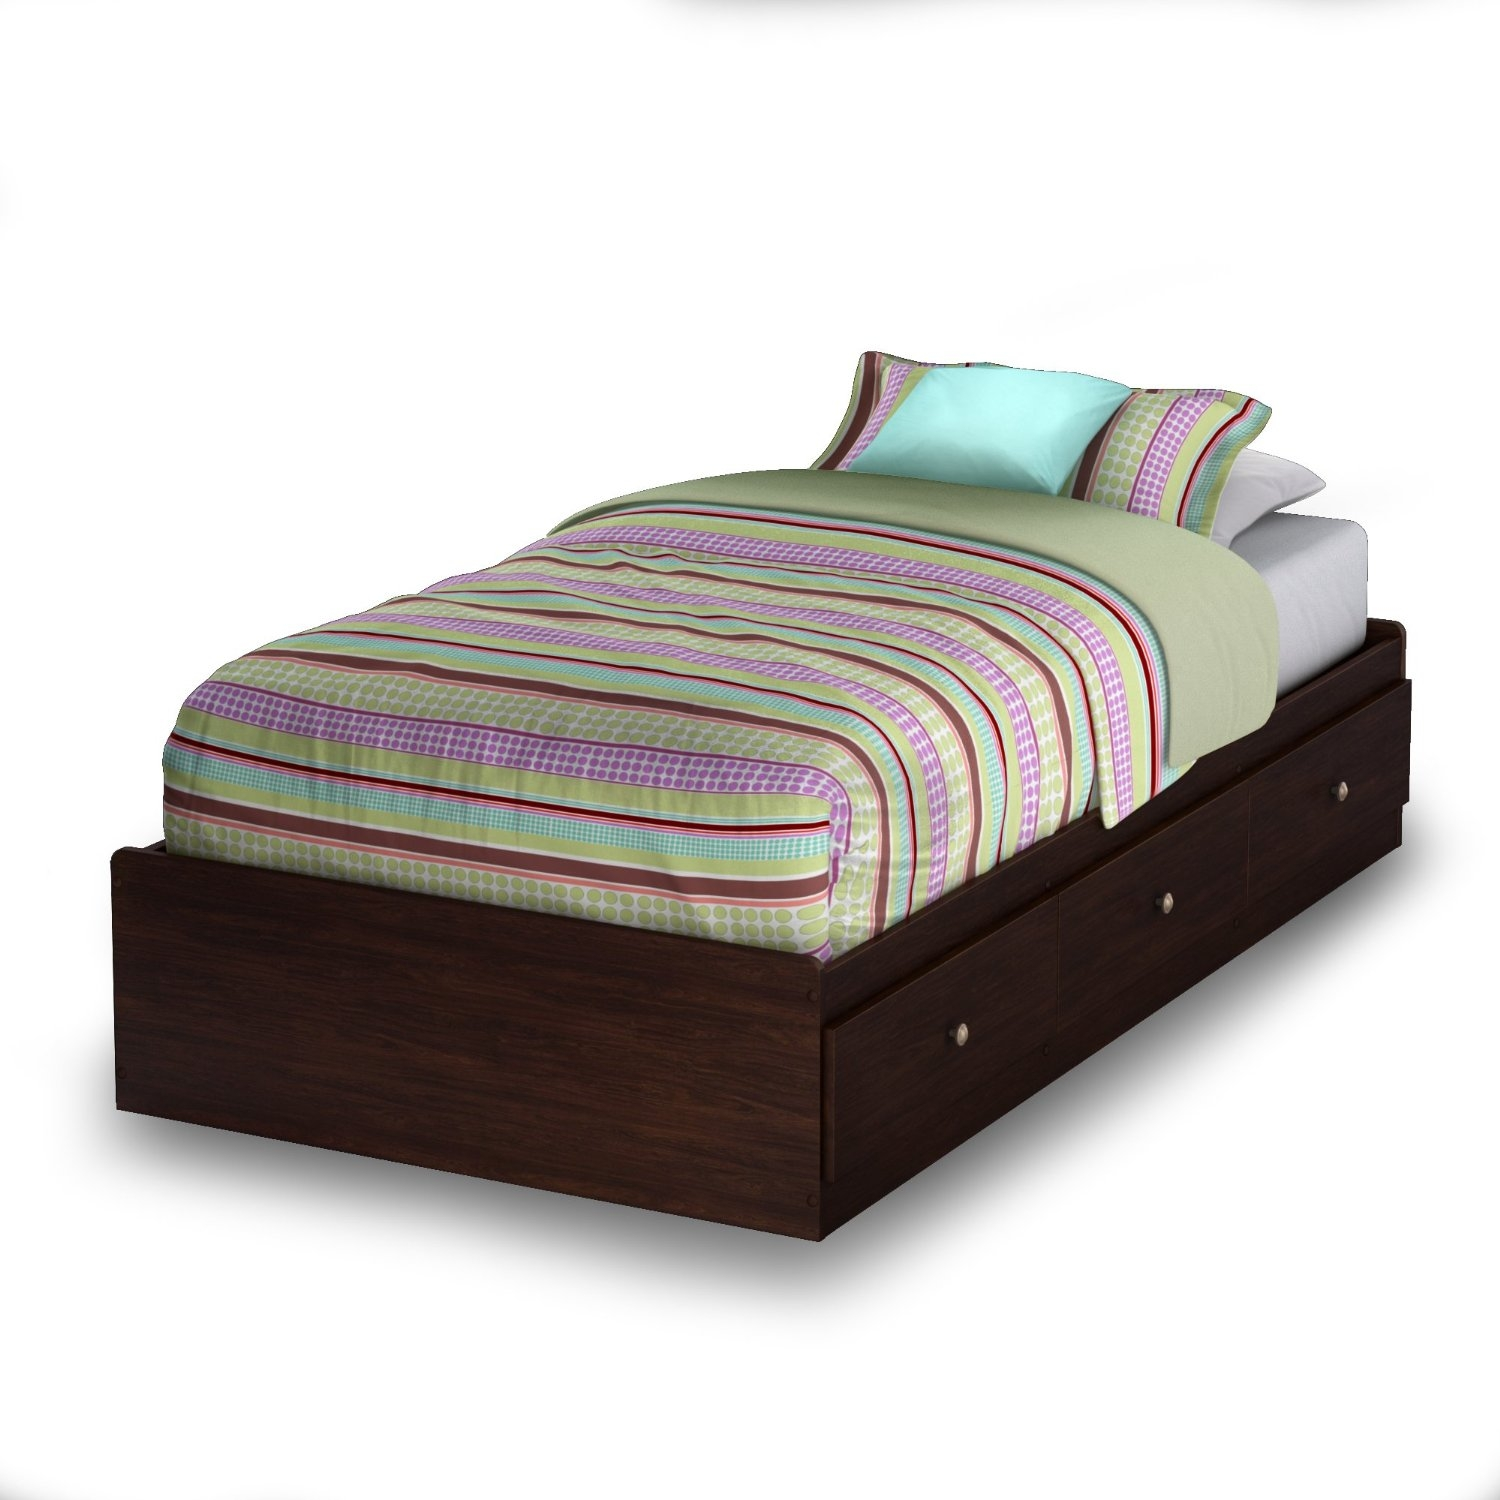 Twin size Platform Bed with 3 Storage Drawers in Havana Finish, SWTPBH179 :  This Twin size Platform Bed with 3 Storage Drawers in Havana Finish features three drawers for closed storage. The bed is reversible, so drawers can be put on either side of the bed. Also, the metal handles with a gold nickel finish will enhance any bedroom. This bed fits twin size mattress and box spring is not required. Interior drawer dimensions: 22-1/2-inch wide by 17-3/4-inch front to back. It features metal slides for smooth gliding. Measures 76-1/4-inch wide by 40-1/4-inch deep by 13-3/4-inch high. It is delivered in one box measuring 82-3/4-inch by 20-inch by 4-inch and weighs 119-pound. Complete assembly required by two adults; Tools not provided; To clean, use a soft dry cloth; Made in Canada; Mattress and accessories not included. Manufactured from CARB compliant composite wood carrying the Forest Stewardship Council (FSC) certification laminated / havana finish.